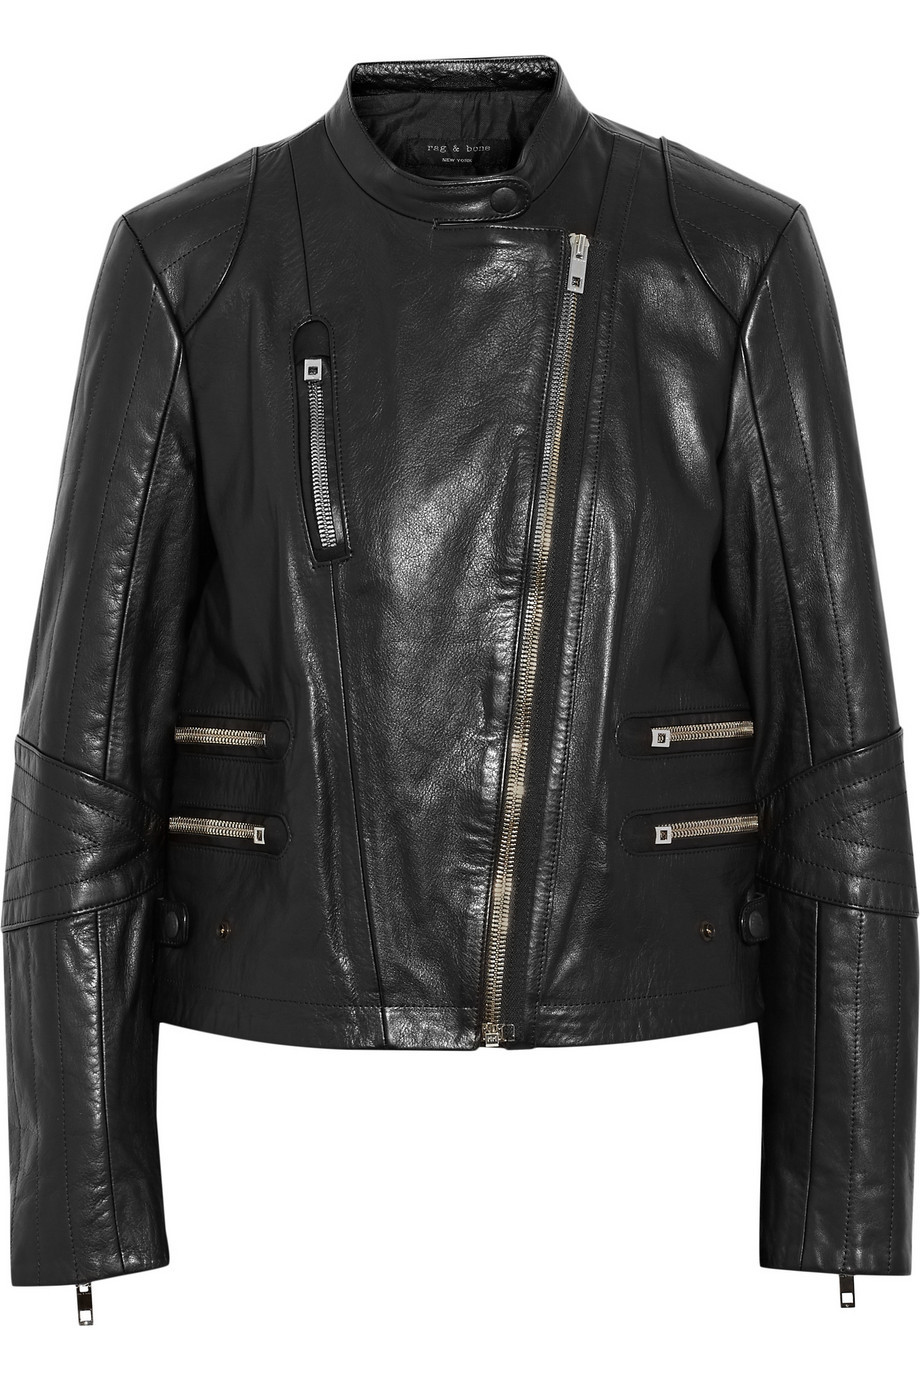 Chamonix Leather Jacket Black - pattern: plain; style: biker; collar: asymmetric biker; predominant colour: black; occasions: casual, creative work; length: standard; fit: straight cut (boxy); fibres: leather - 100%; sleeve length: long sleeve; sleeve style: standard; texture group: leather; collar break: high/illusion of break when open; pattern type: fabric; season: a/w 2015; wardrobe: basic